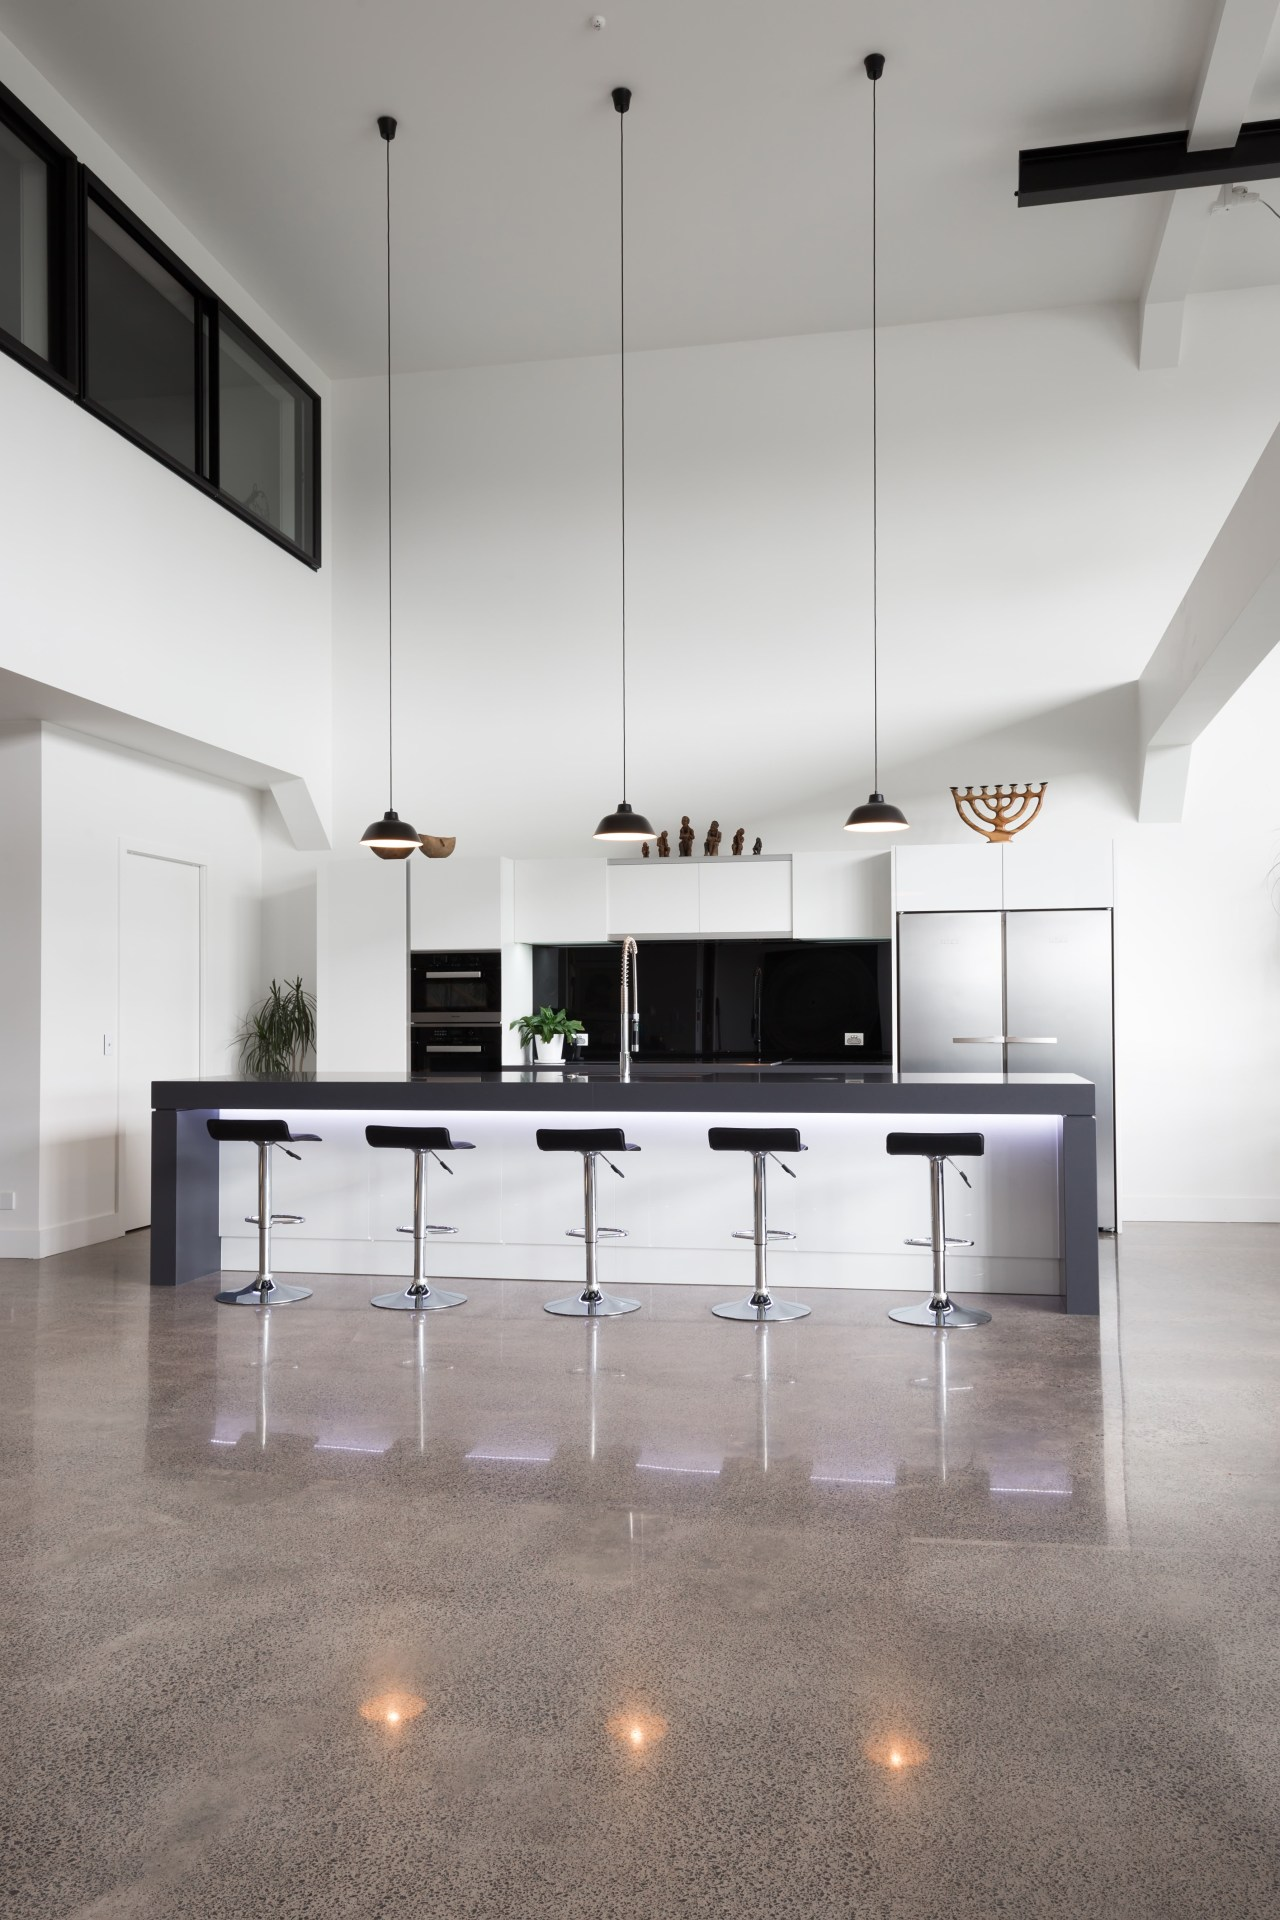 LED lights above the cabinets and under the architecture, ceiling, countertop, floor, flooring, furniture, interior design, kitchen, loft, product design, table, gray